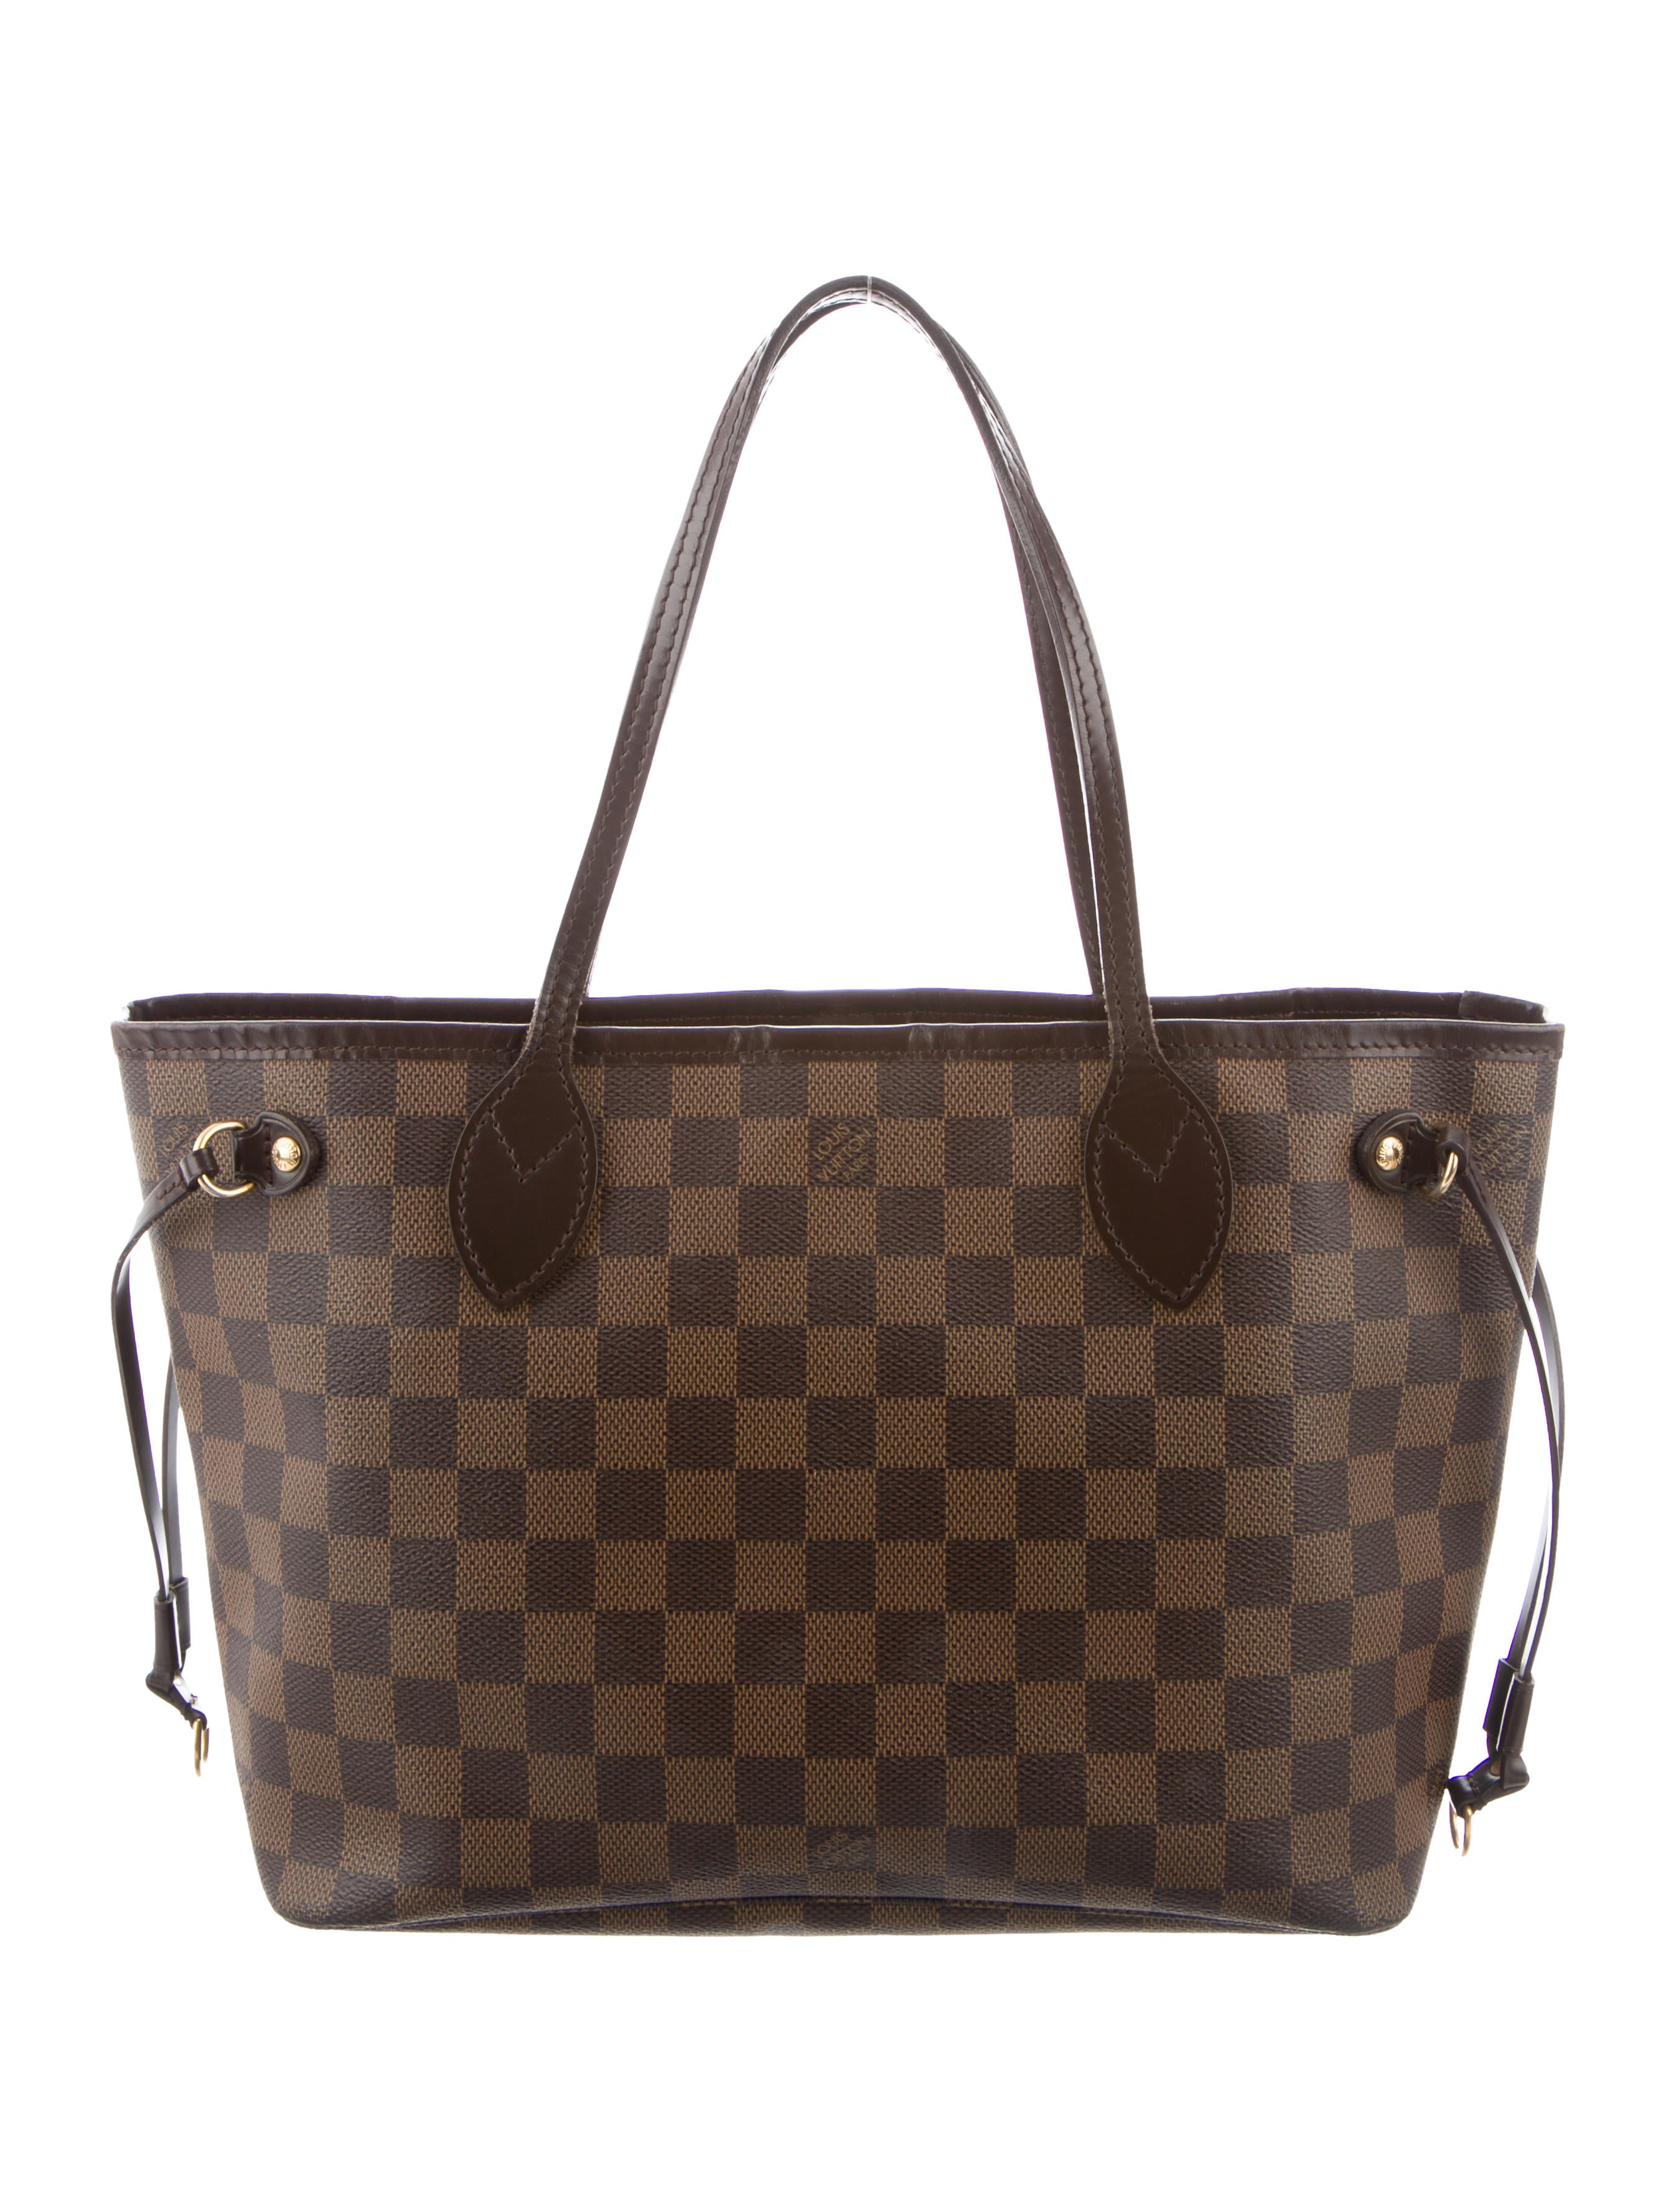 1f8e4f72dfa9 Louis Vuitton Handbags